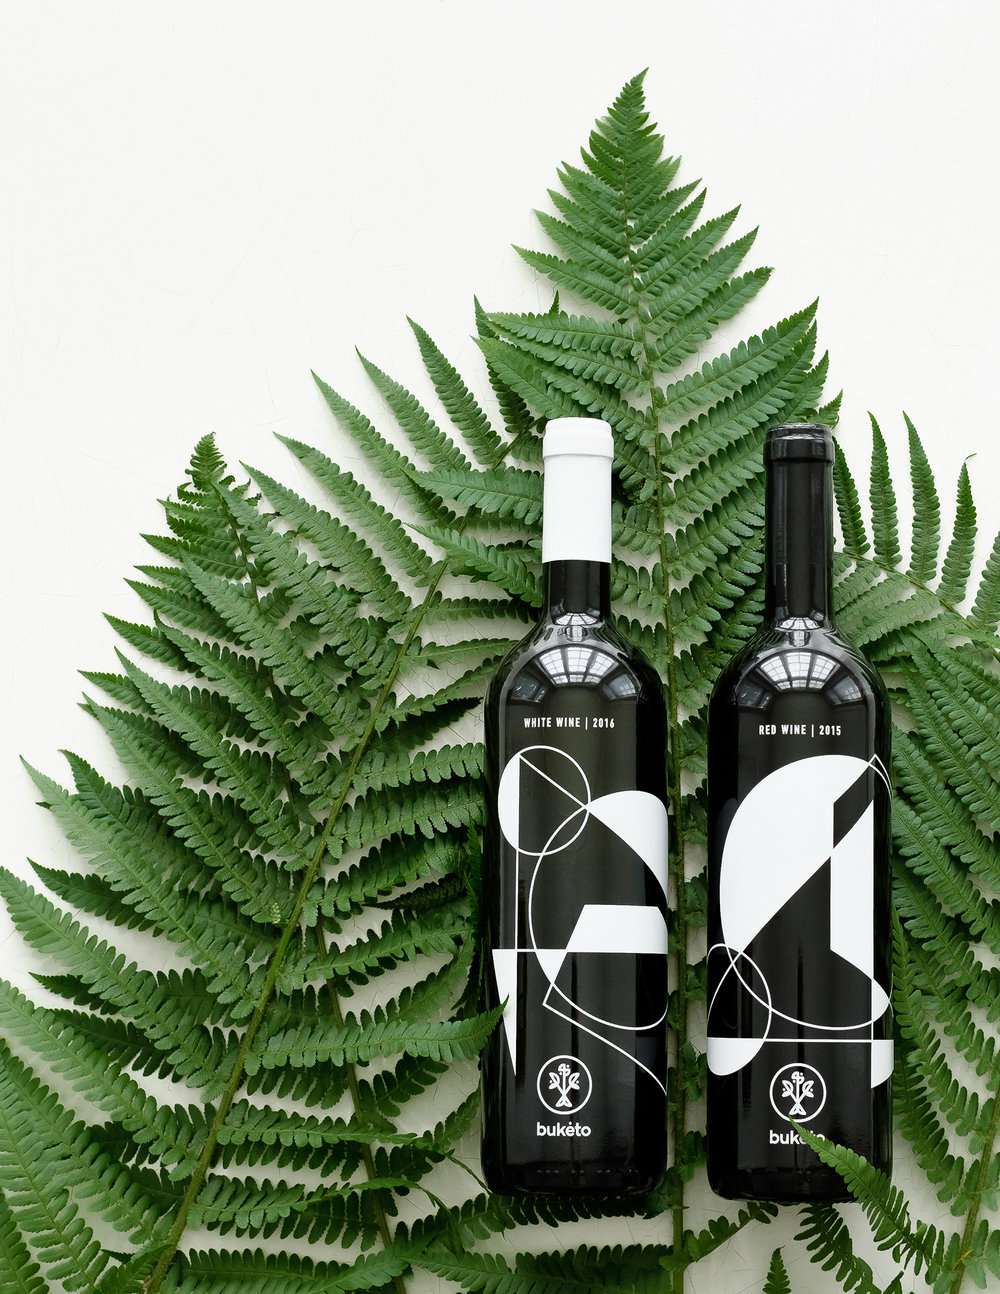 Buketo wine bottle designs by Lazy snail Design